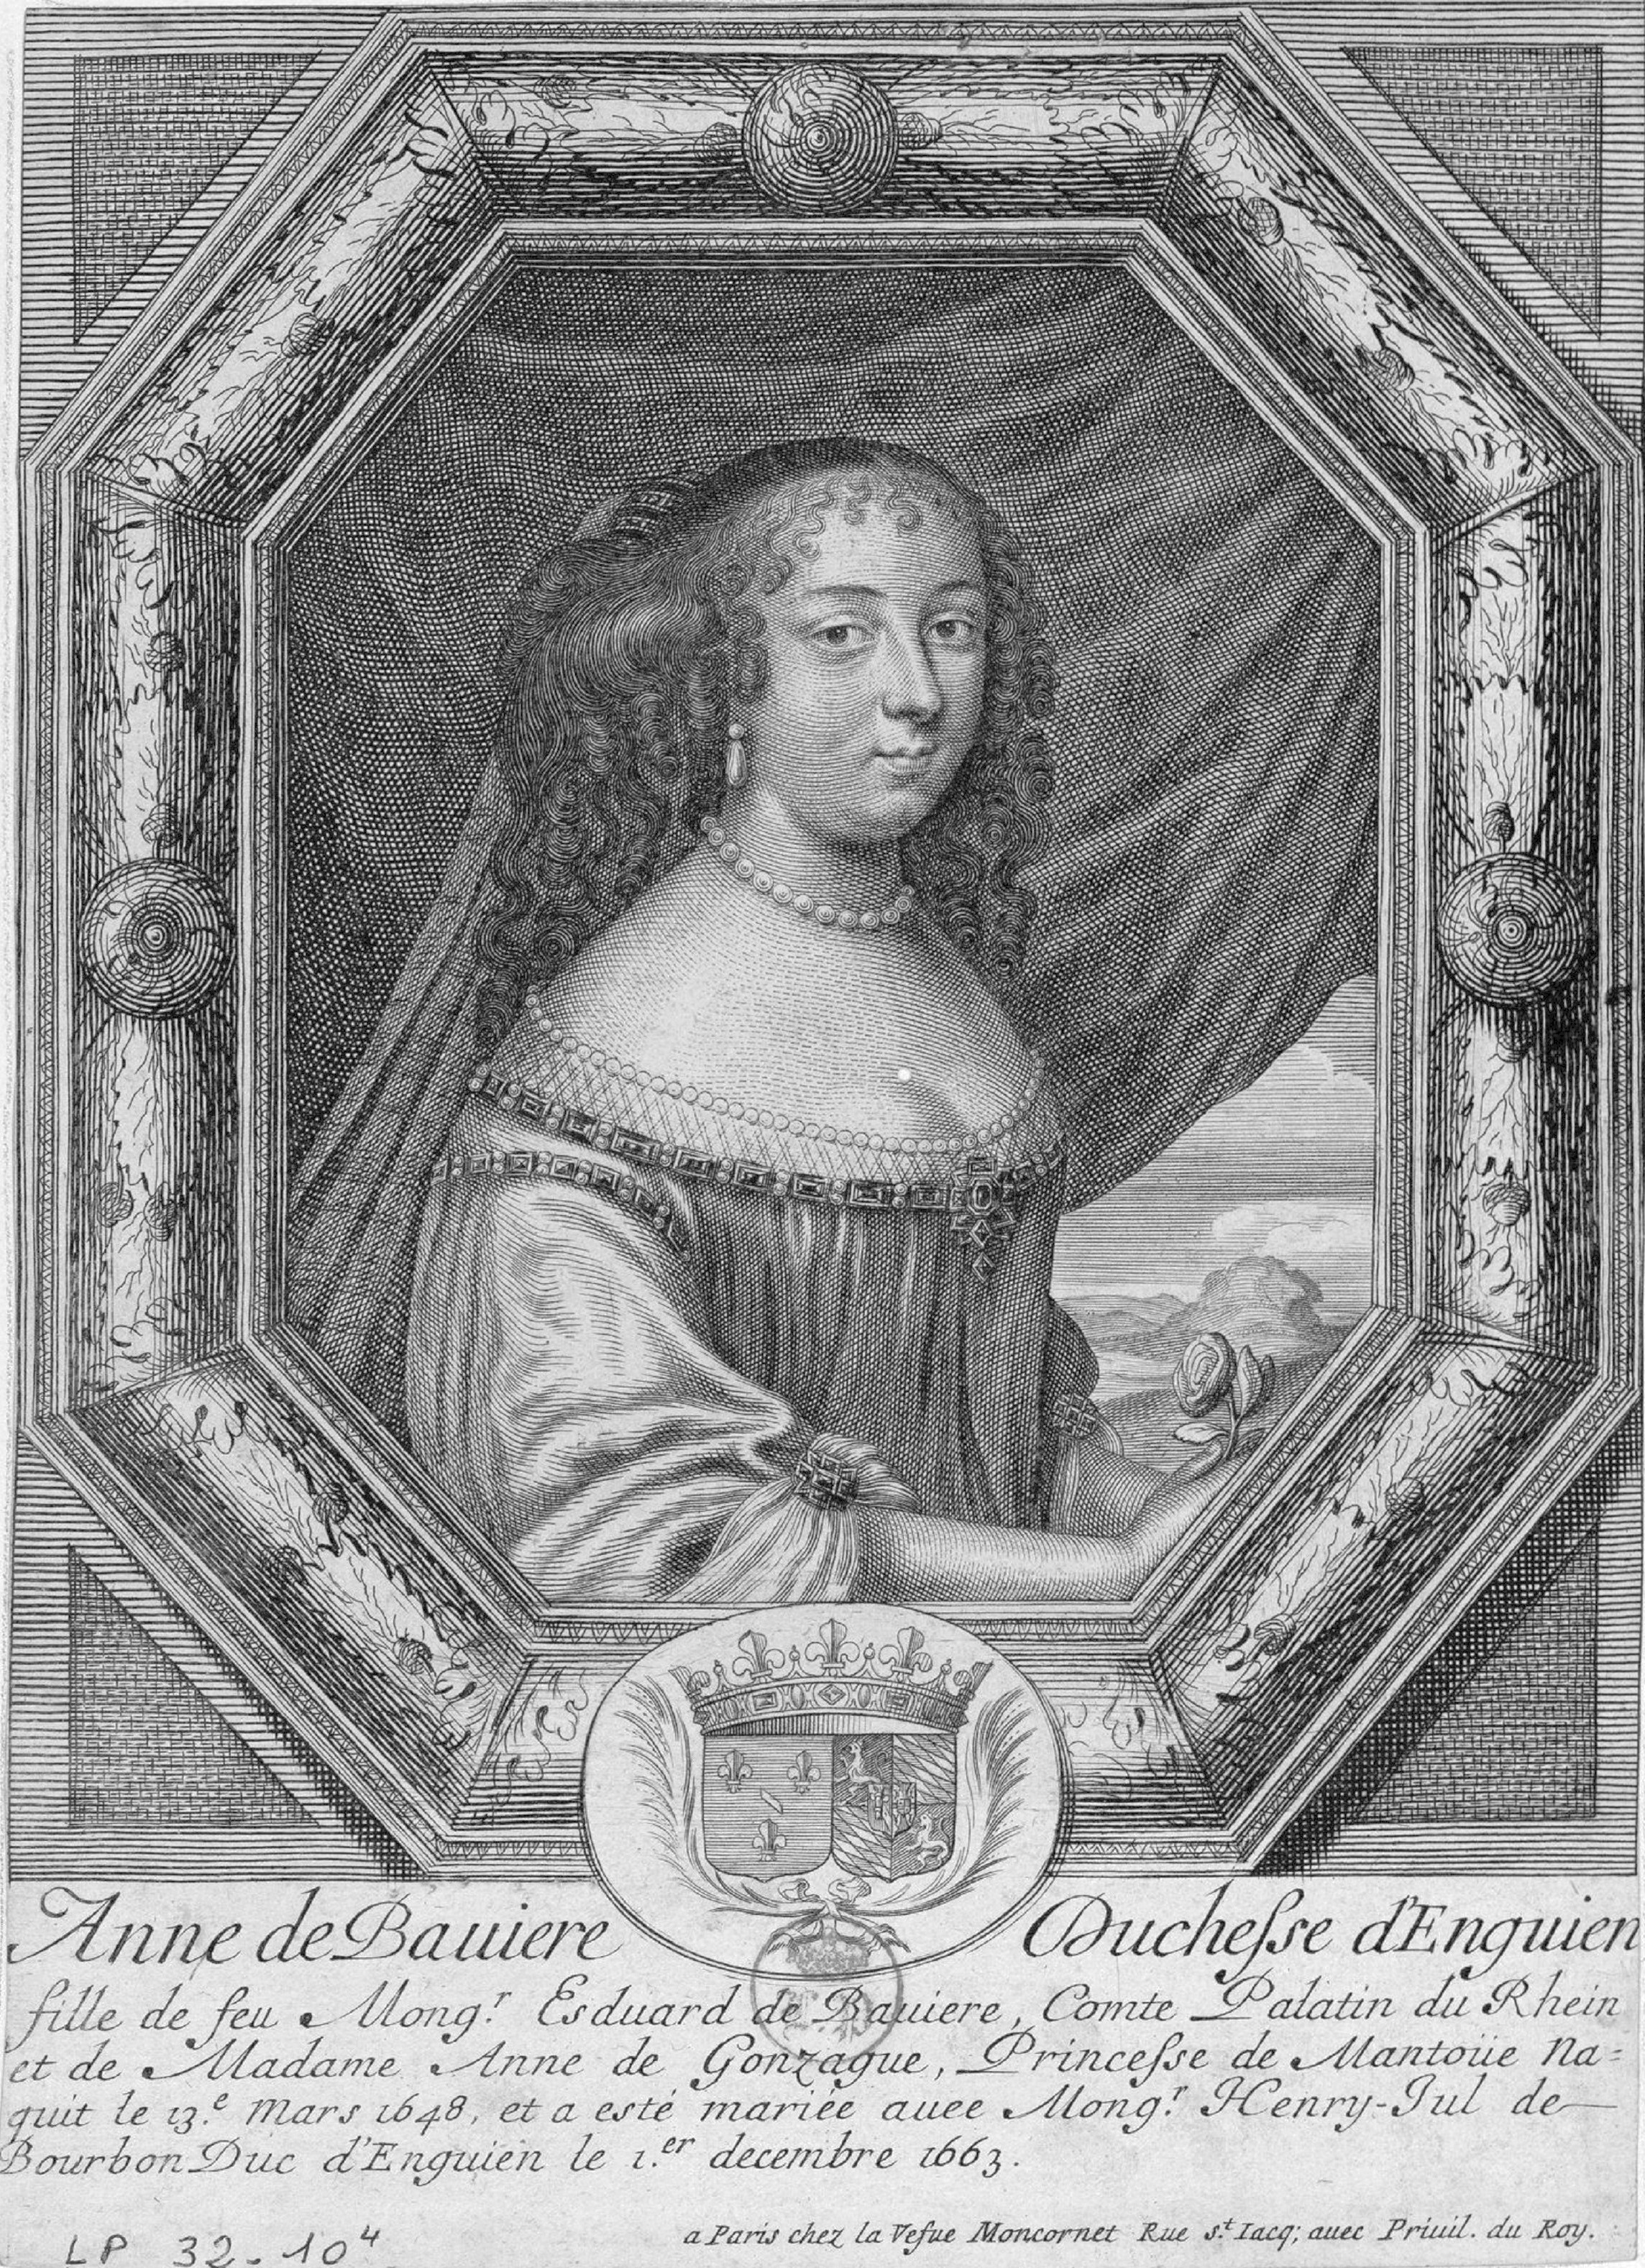 Undated engraved portrait of Anne de Bavière by Marguerite Van der Mael